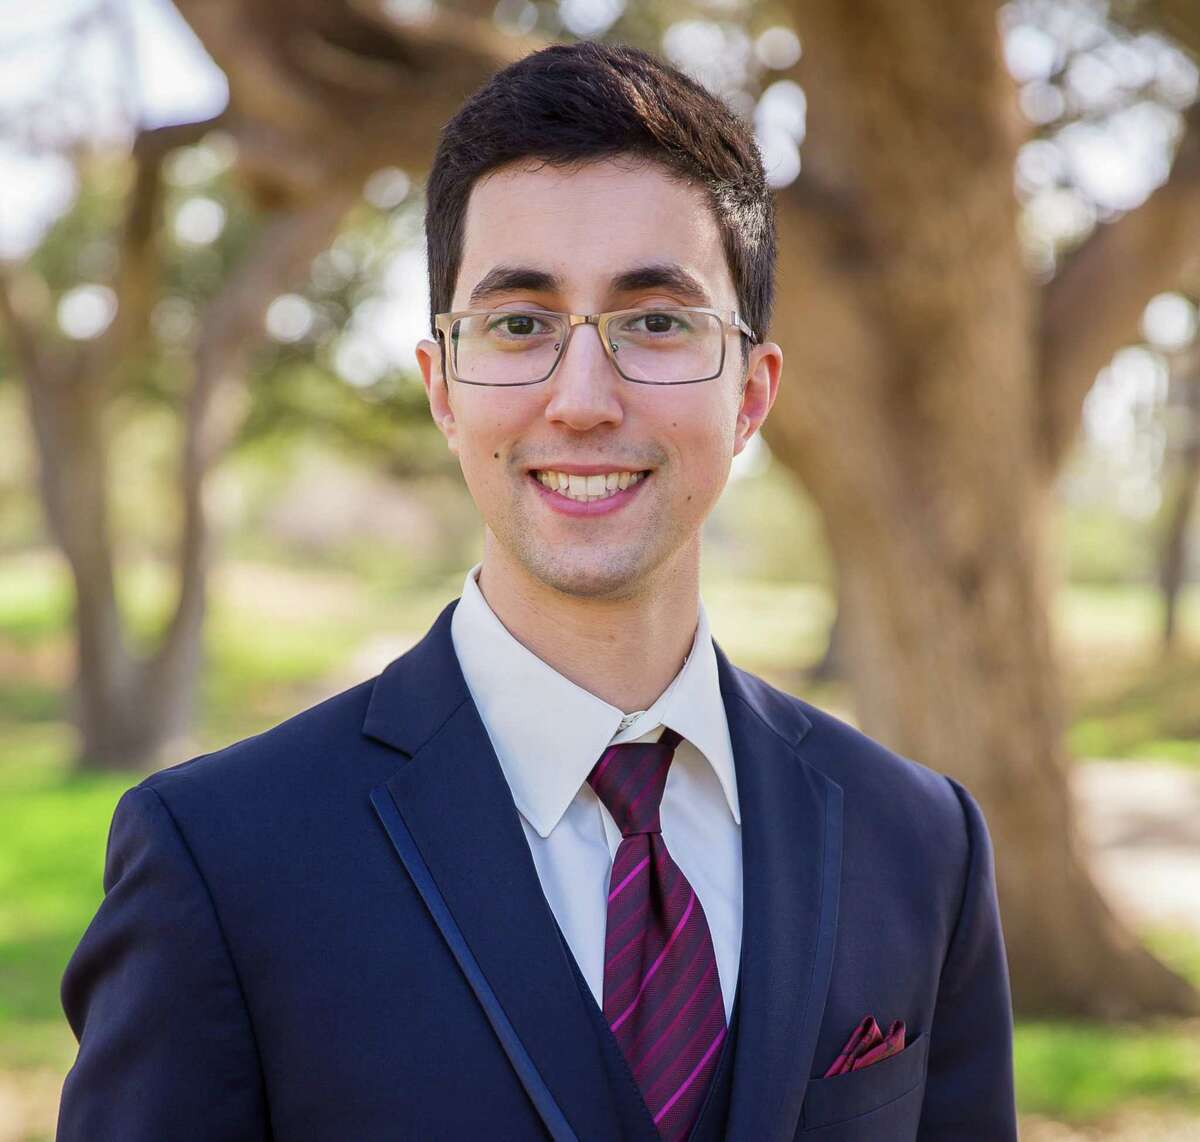 Blake Rawitt, a software engineer working for the Air Force, ran for the District 7 seat on the Northside ISD board.